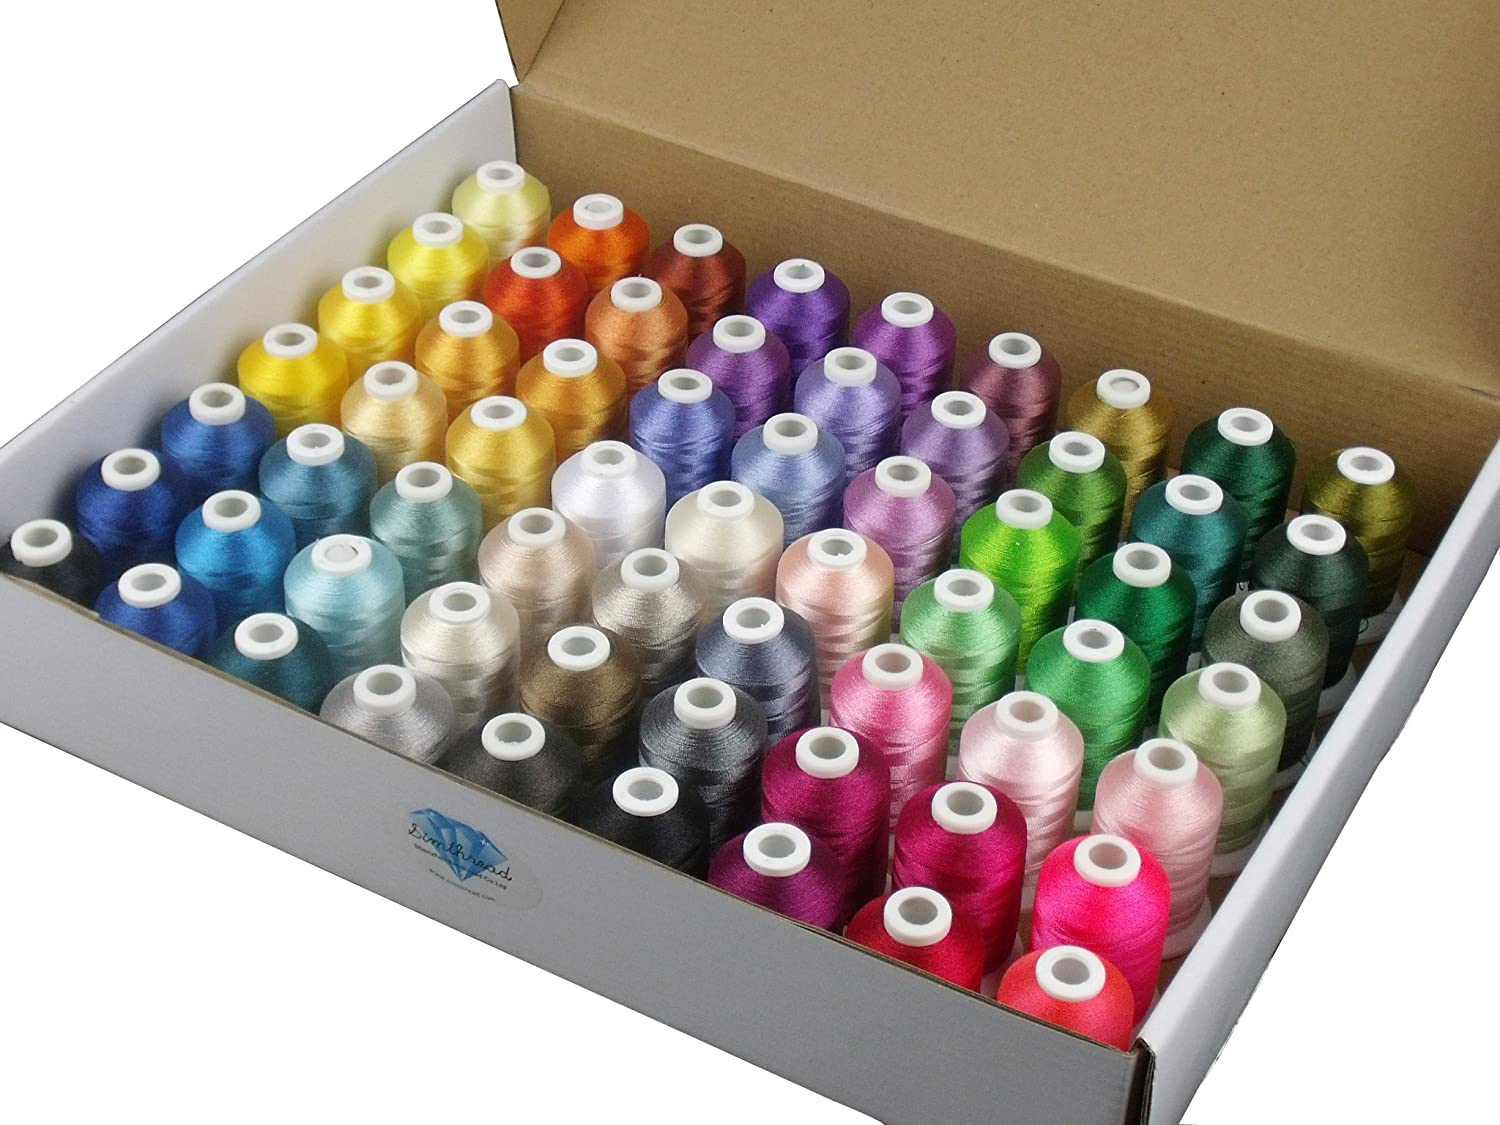 Best value for money:Simthread63 Brother Colors Polyester Embroidery Machine Thread Kit